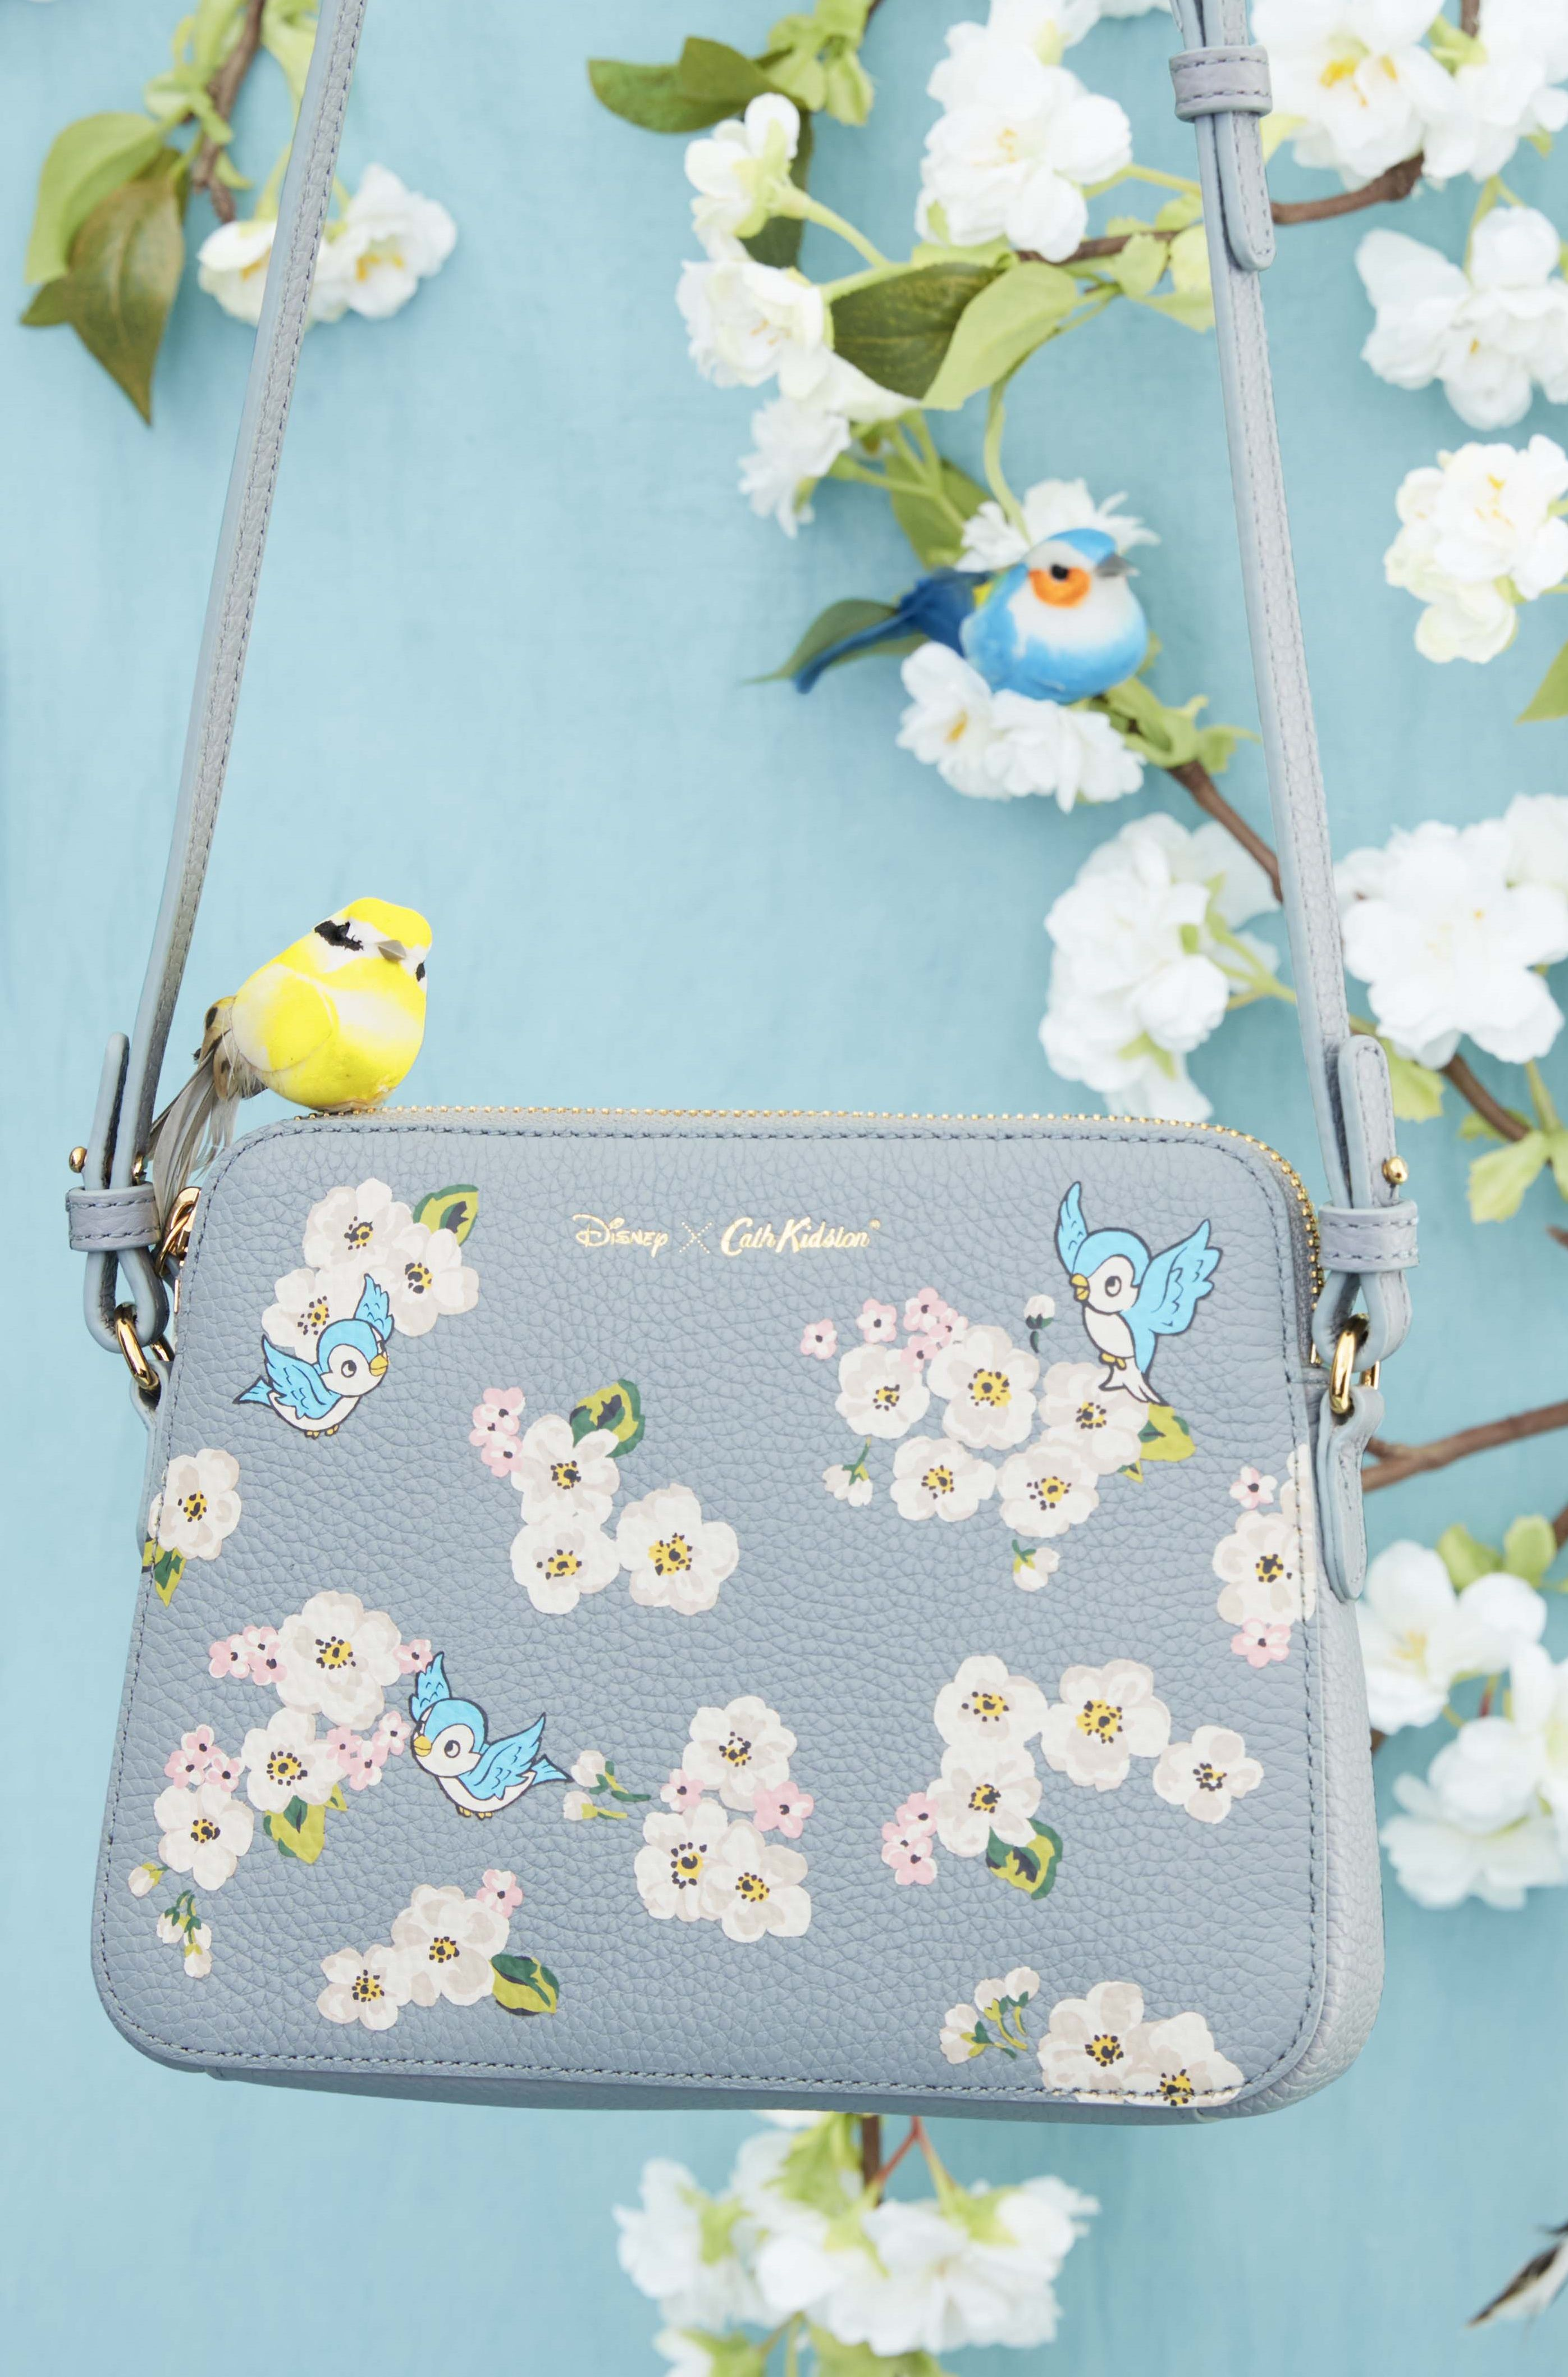 e239ea318f03 ... cross body handbag with birds and floral print on. Features luxury  leather with over the body long strap. Limited edition print. Disney X Cath  Kidston ...